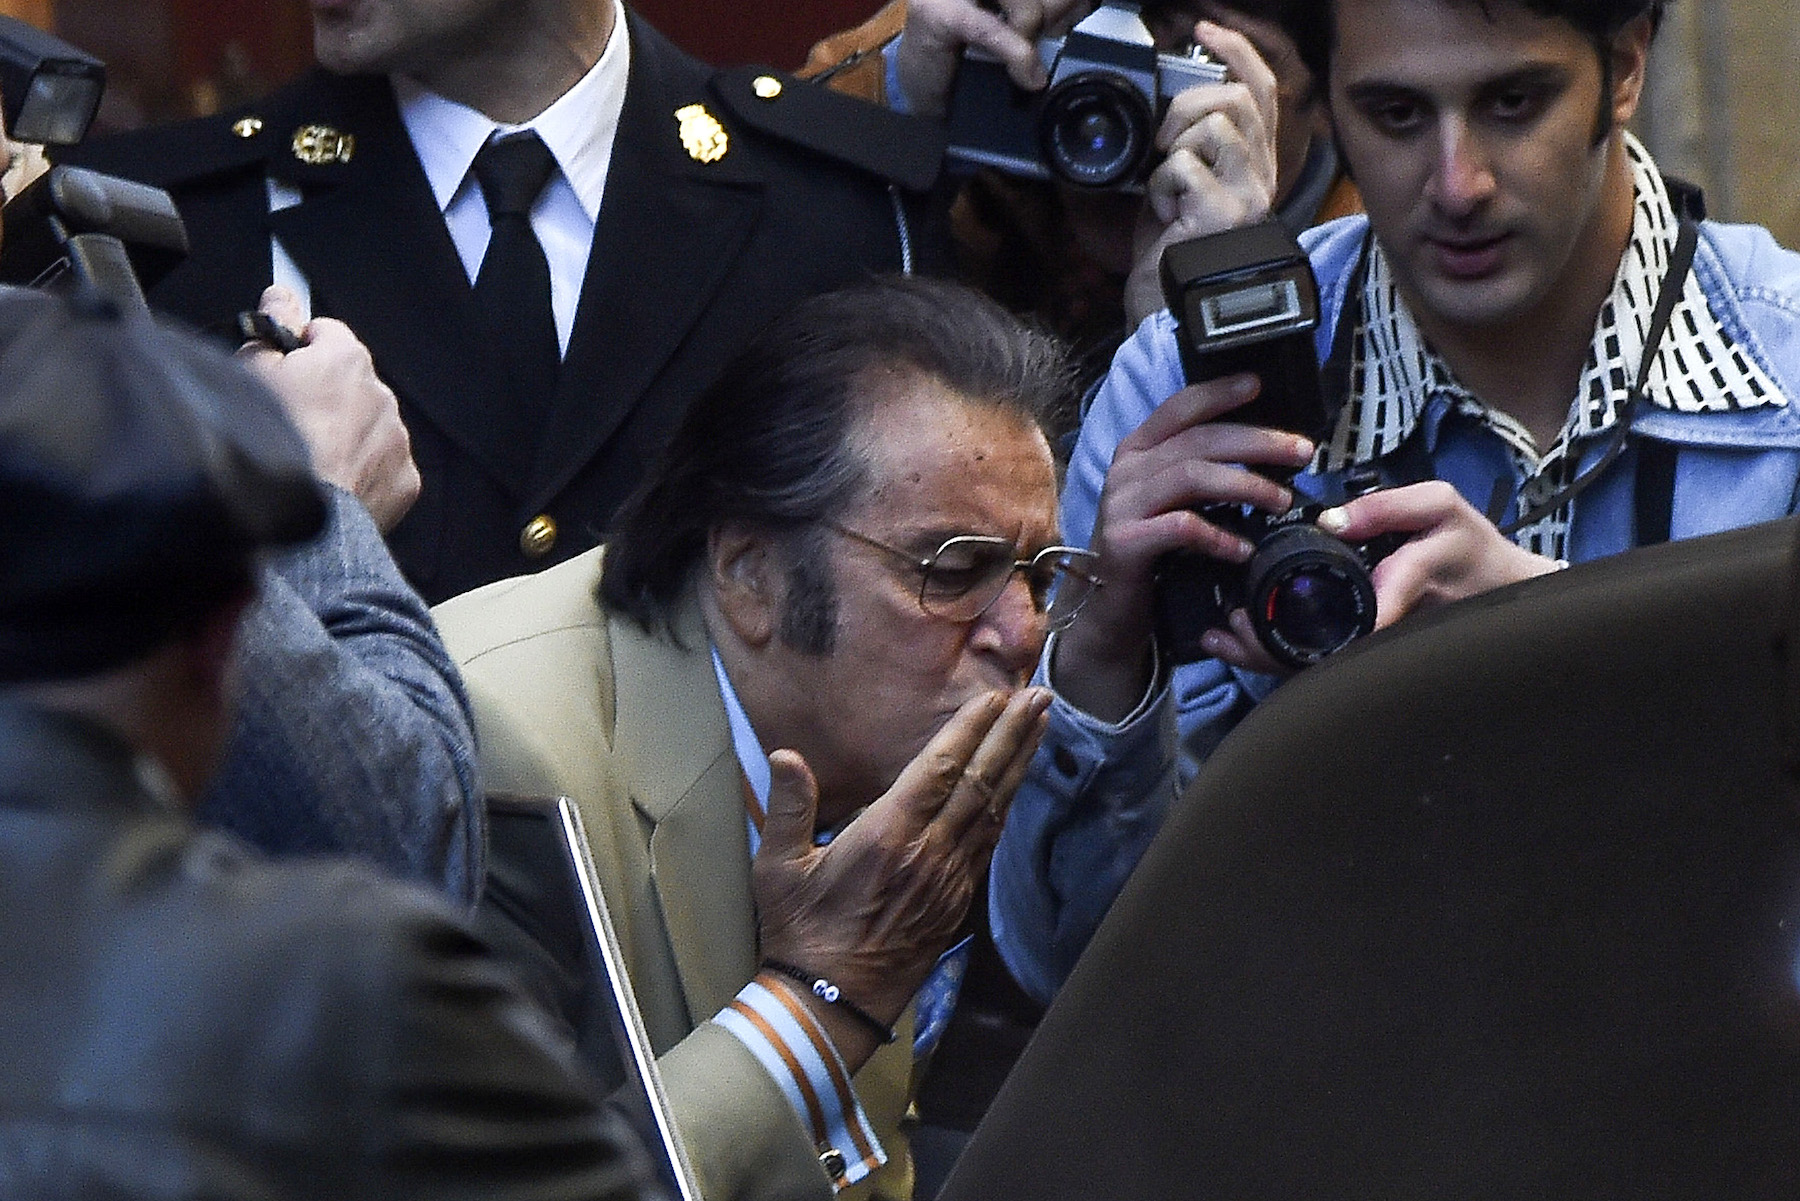 'House Of Gucci' Watch Fail Suggests Al Pacino Has A Time Machine